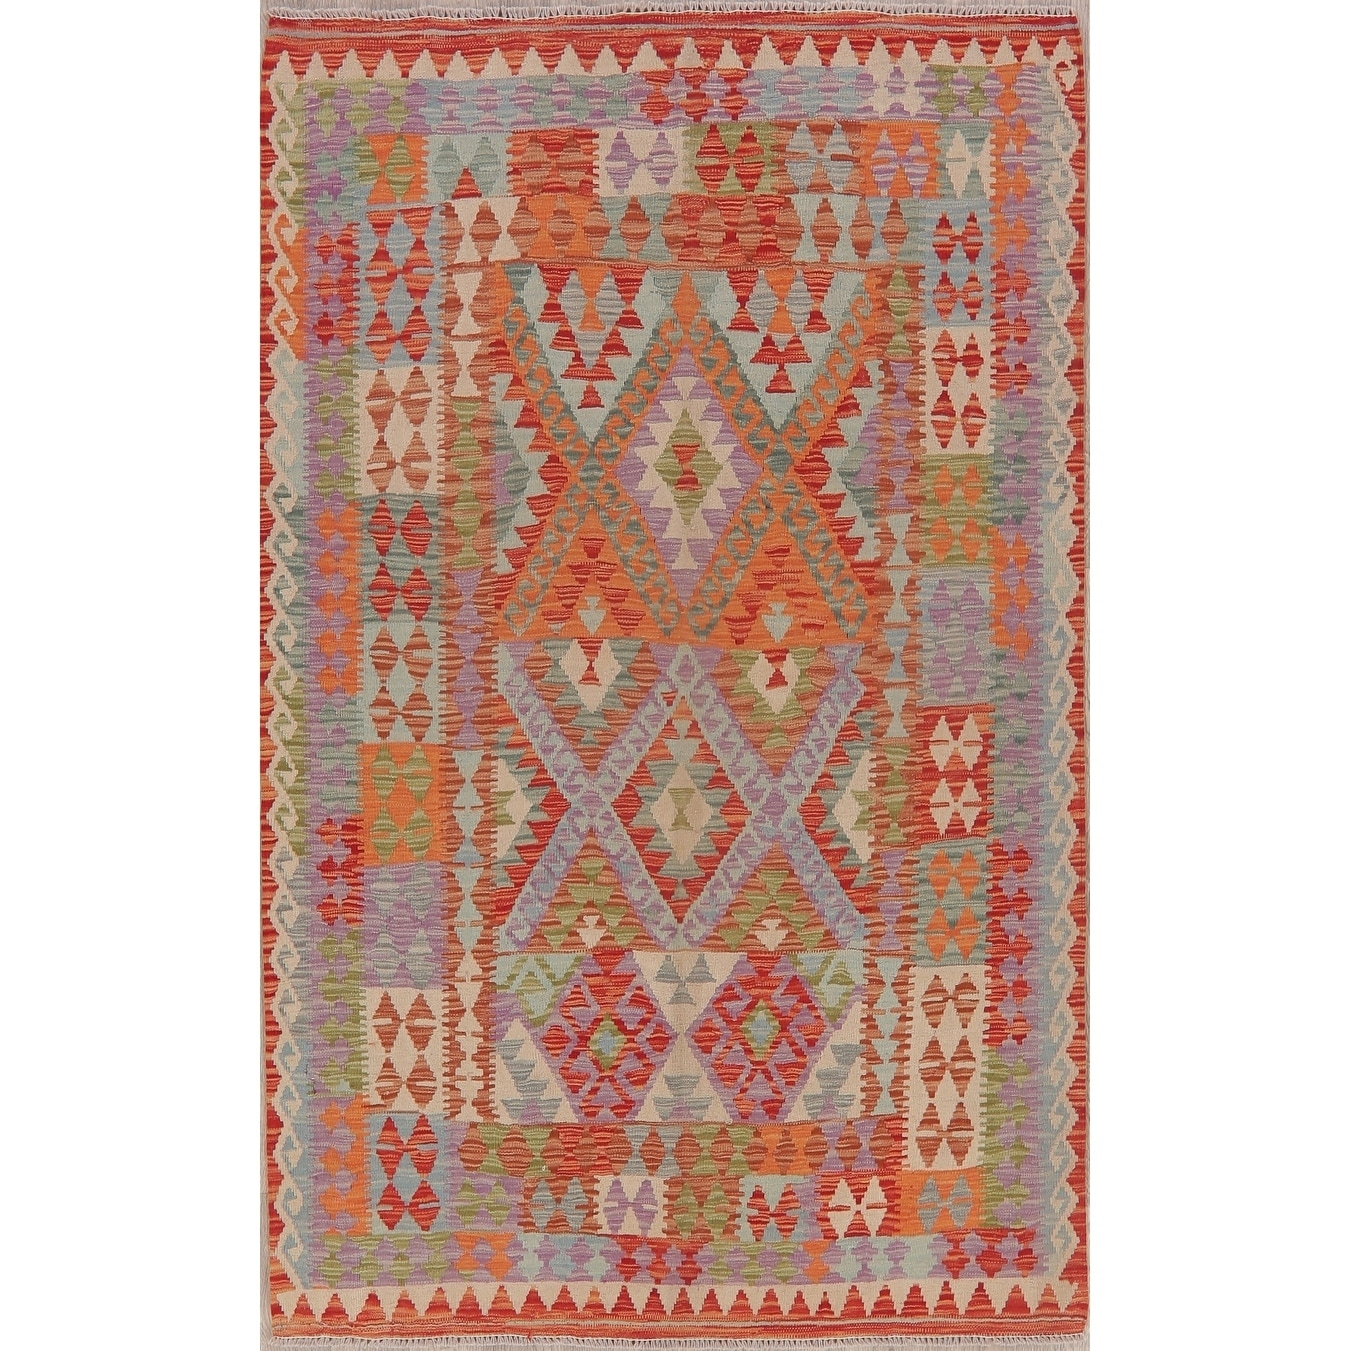 Shop For Pastel Flat Woven Southwestern Tribal Kilim Turkish Geometric Area Rug 6 8 X 4 11 Get Free Delivery On Everything At Overstock Your Online Home Decor Store Get 5 In Rewards With Club O 29766078